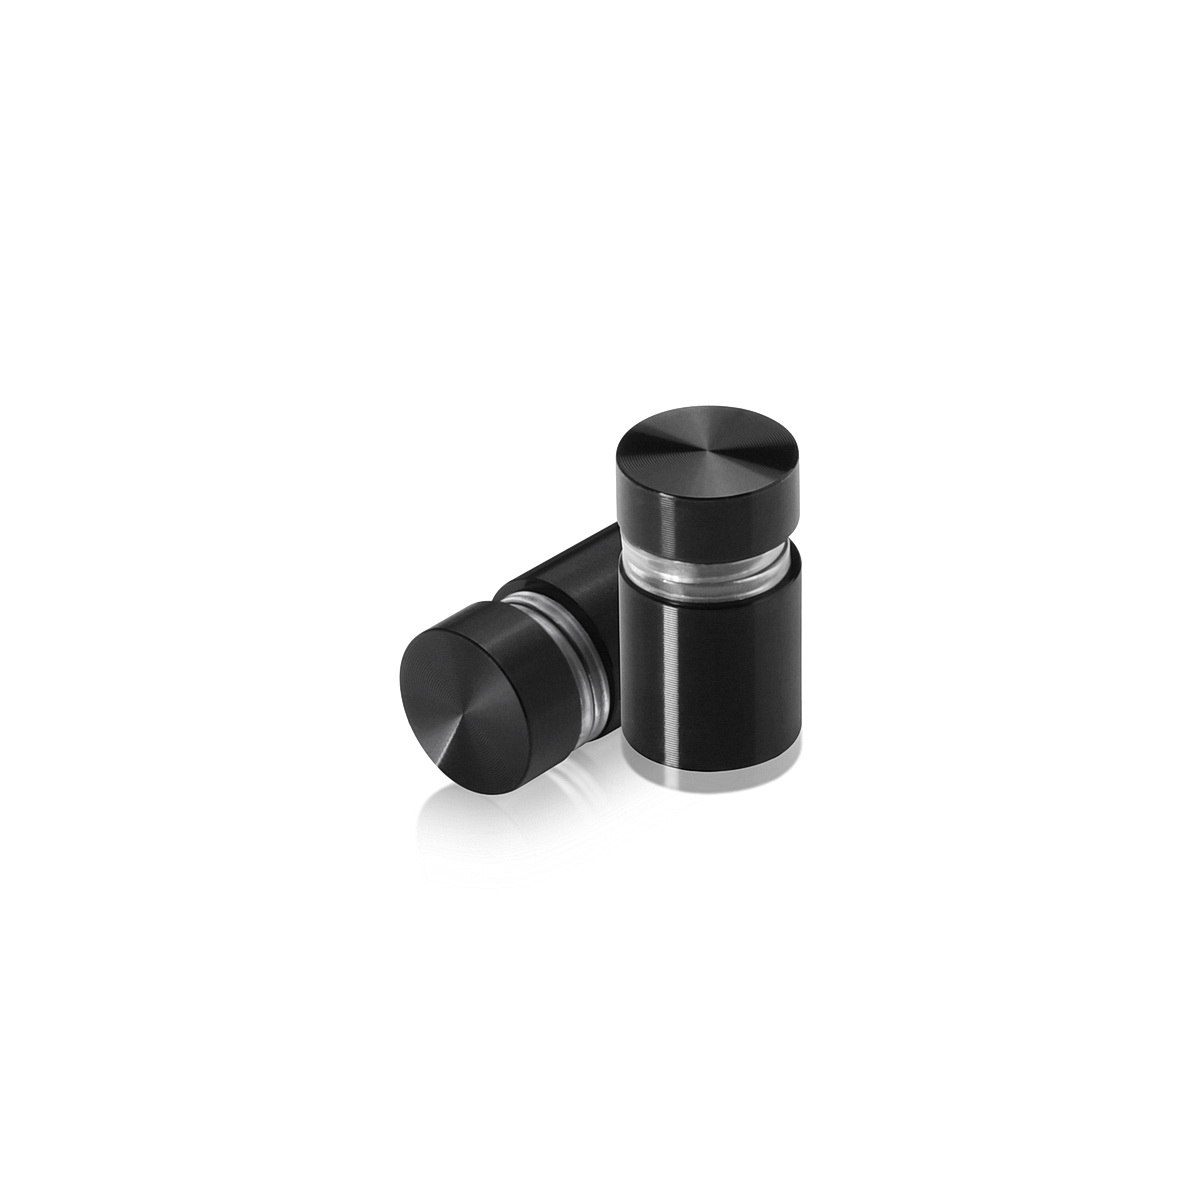 1/2'' Diameter X 1/2'' Barrel Length, Aluminum Flat Head Standoffs, Black Anodized Finish Easy Fasten Standoff (For Inside / Outside use) Tamper Proof Standoff